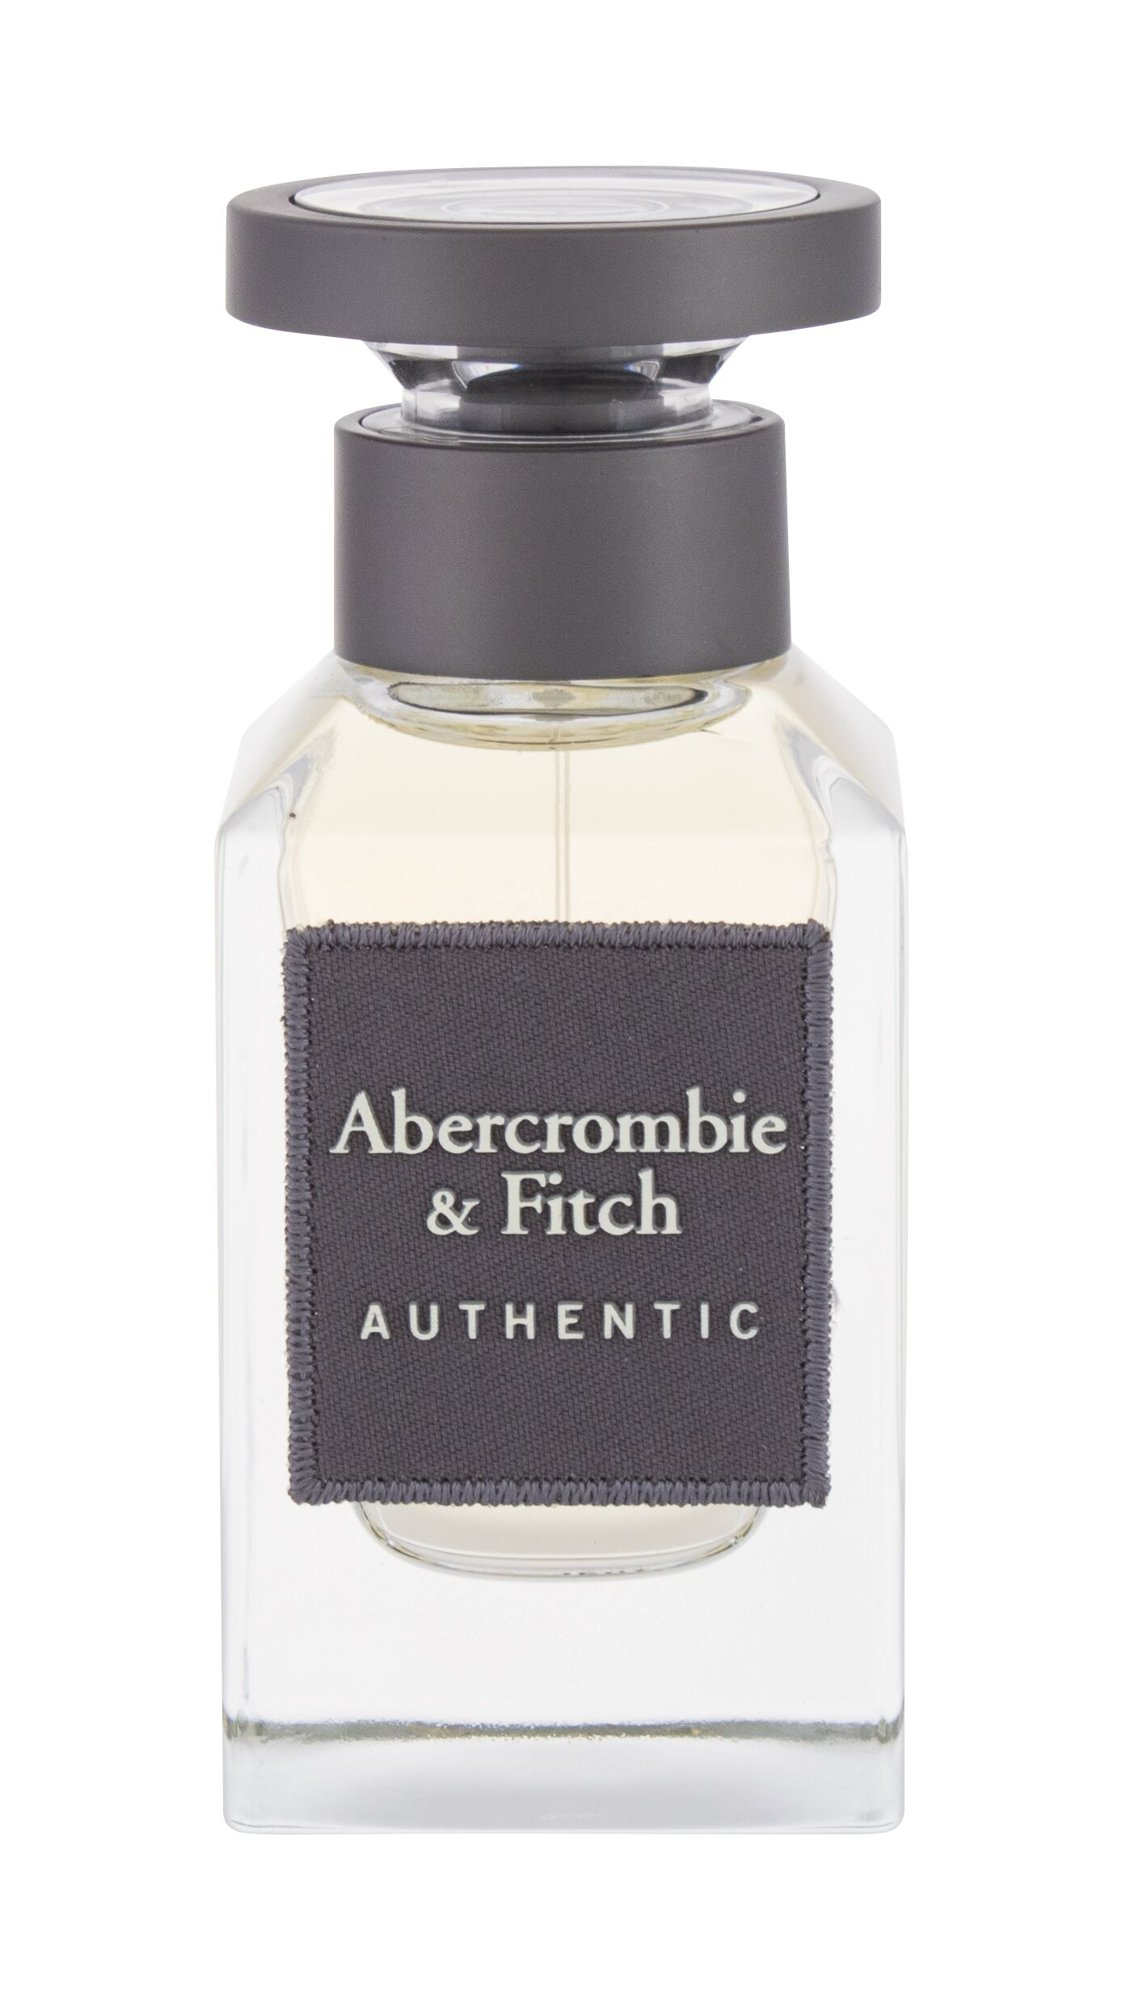 Abercrombie & Fitch Authentic, Toaletná voda 50ml